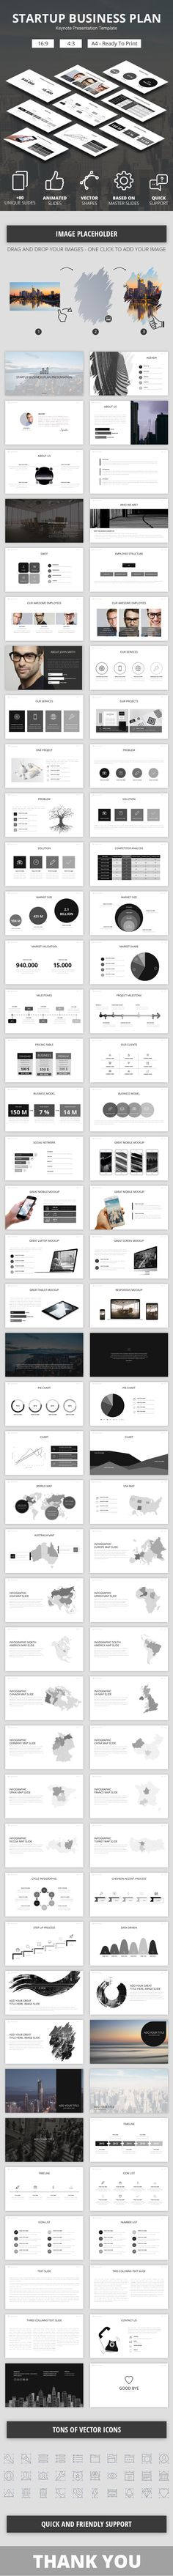 Startup Business Plan Keynote Presenation Template                                                                                                                                                                                 More